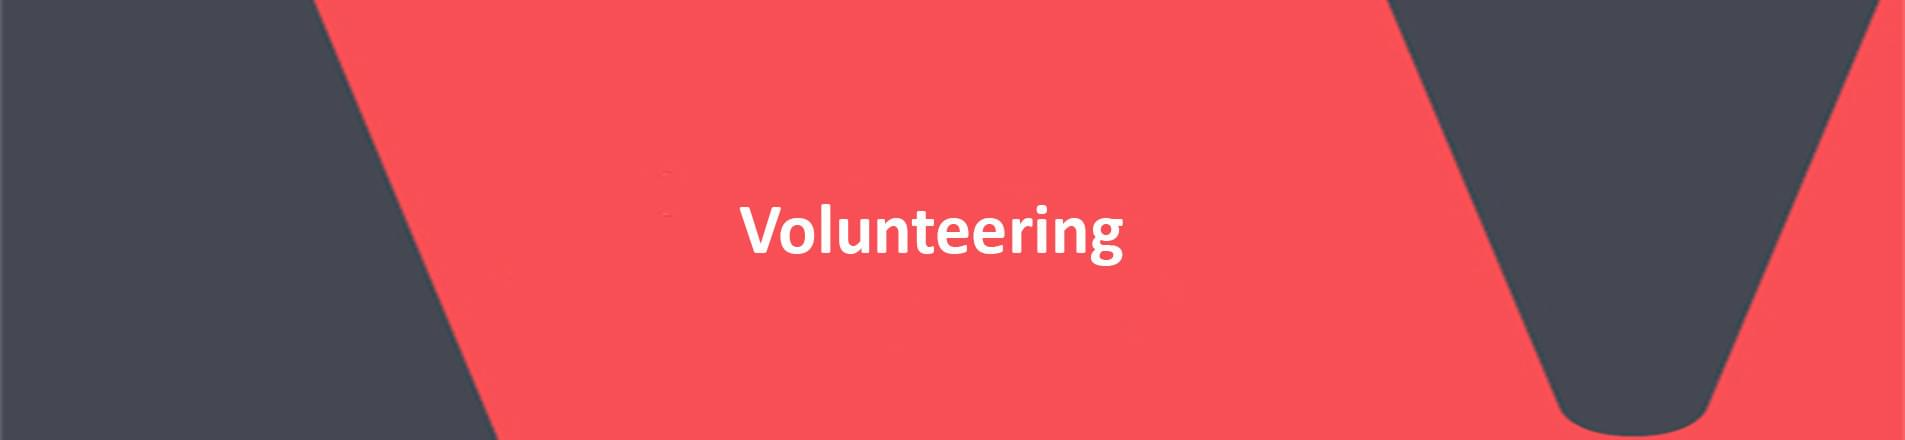 The word volunteering  written on red VERCIDA  branded background